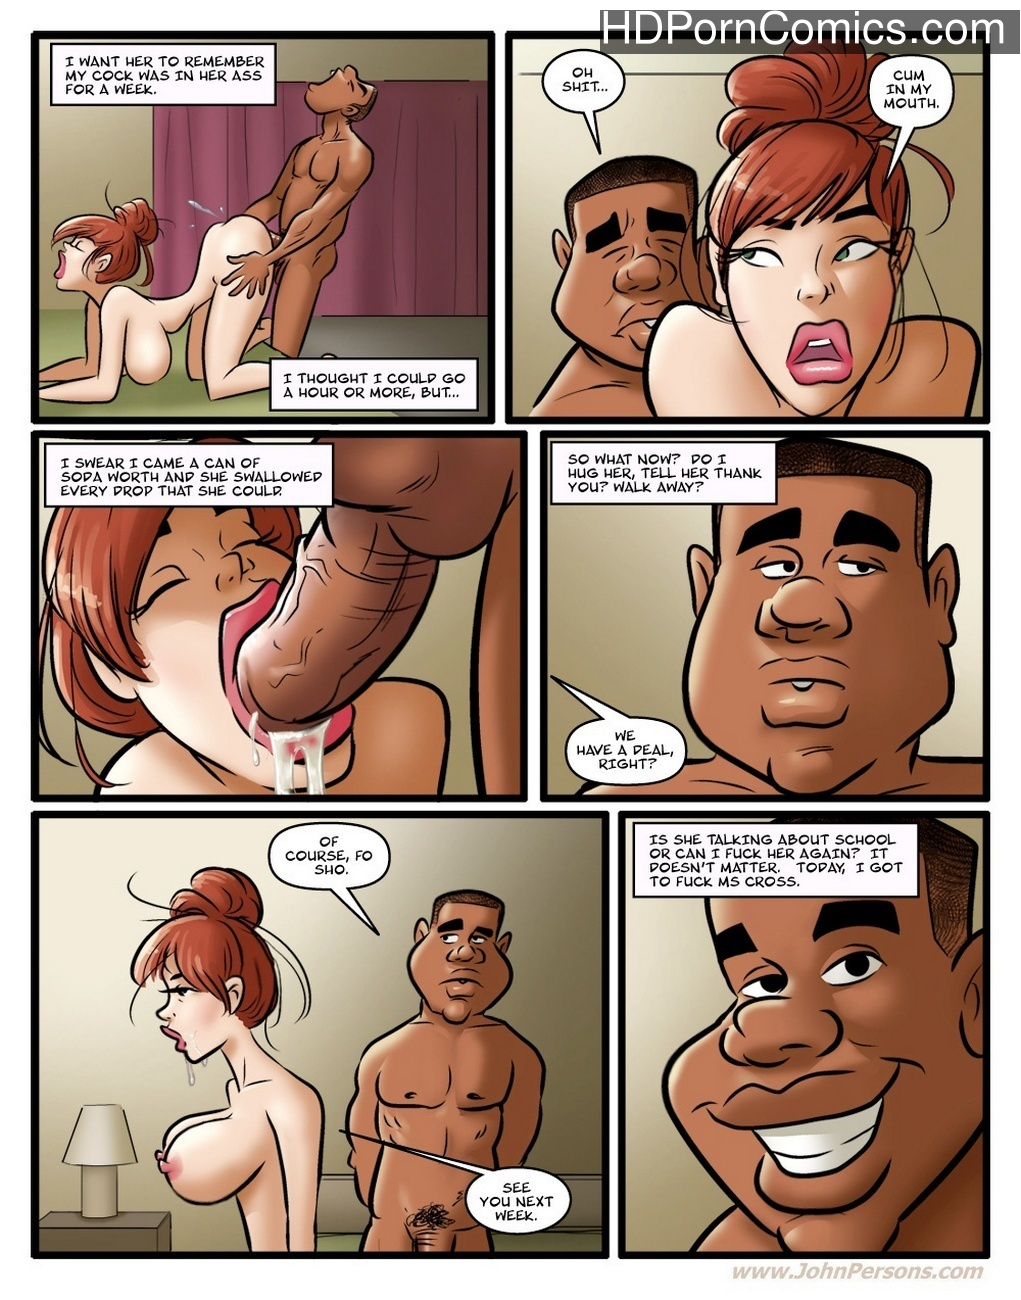 Hot For Ms Cross 1 11 free sex comic